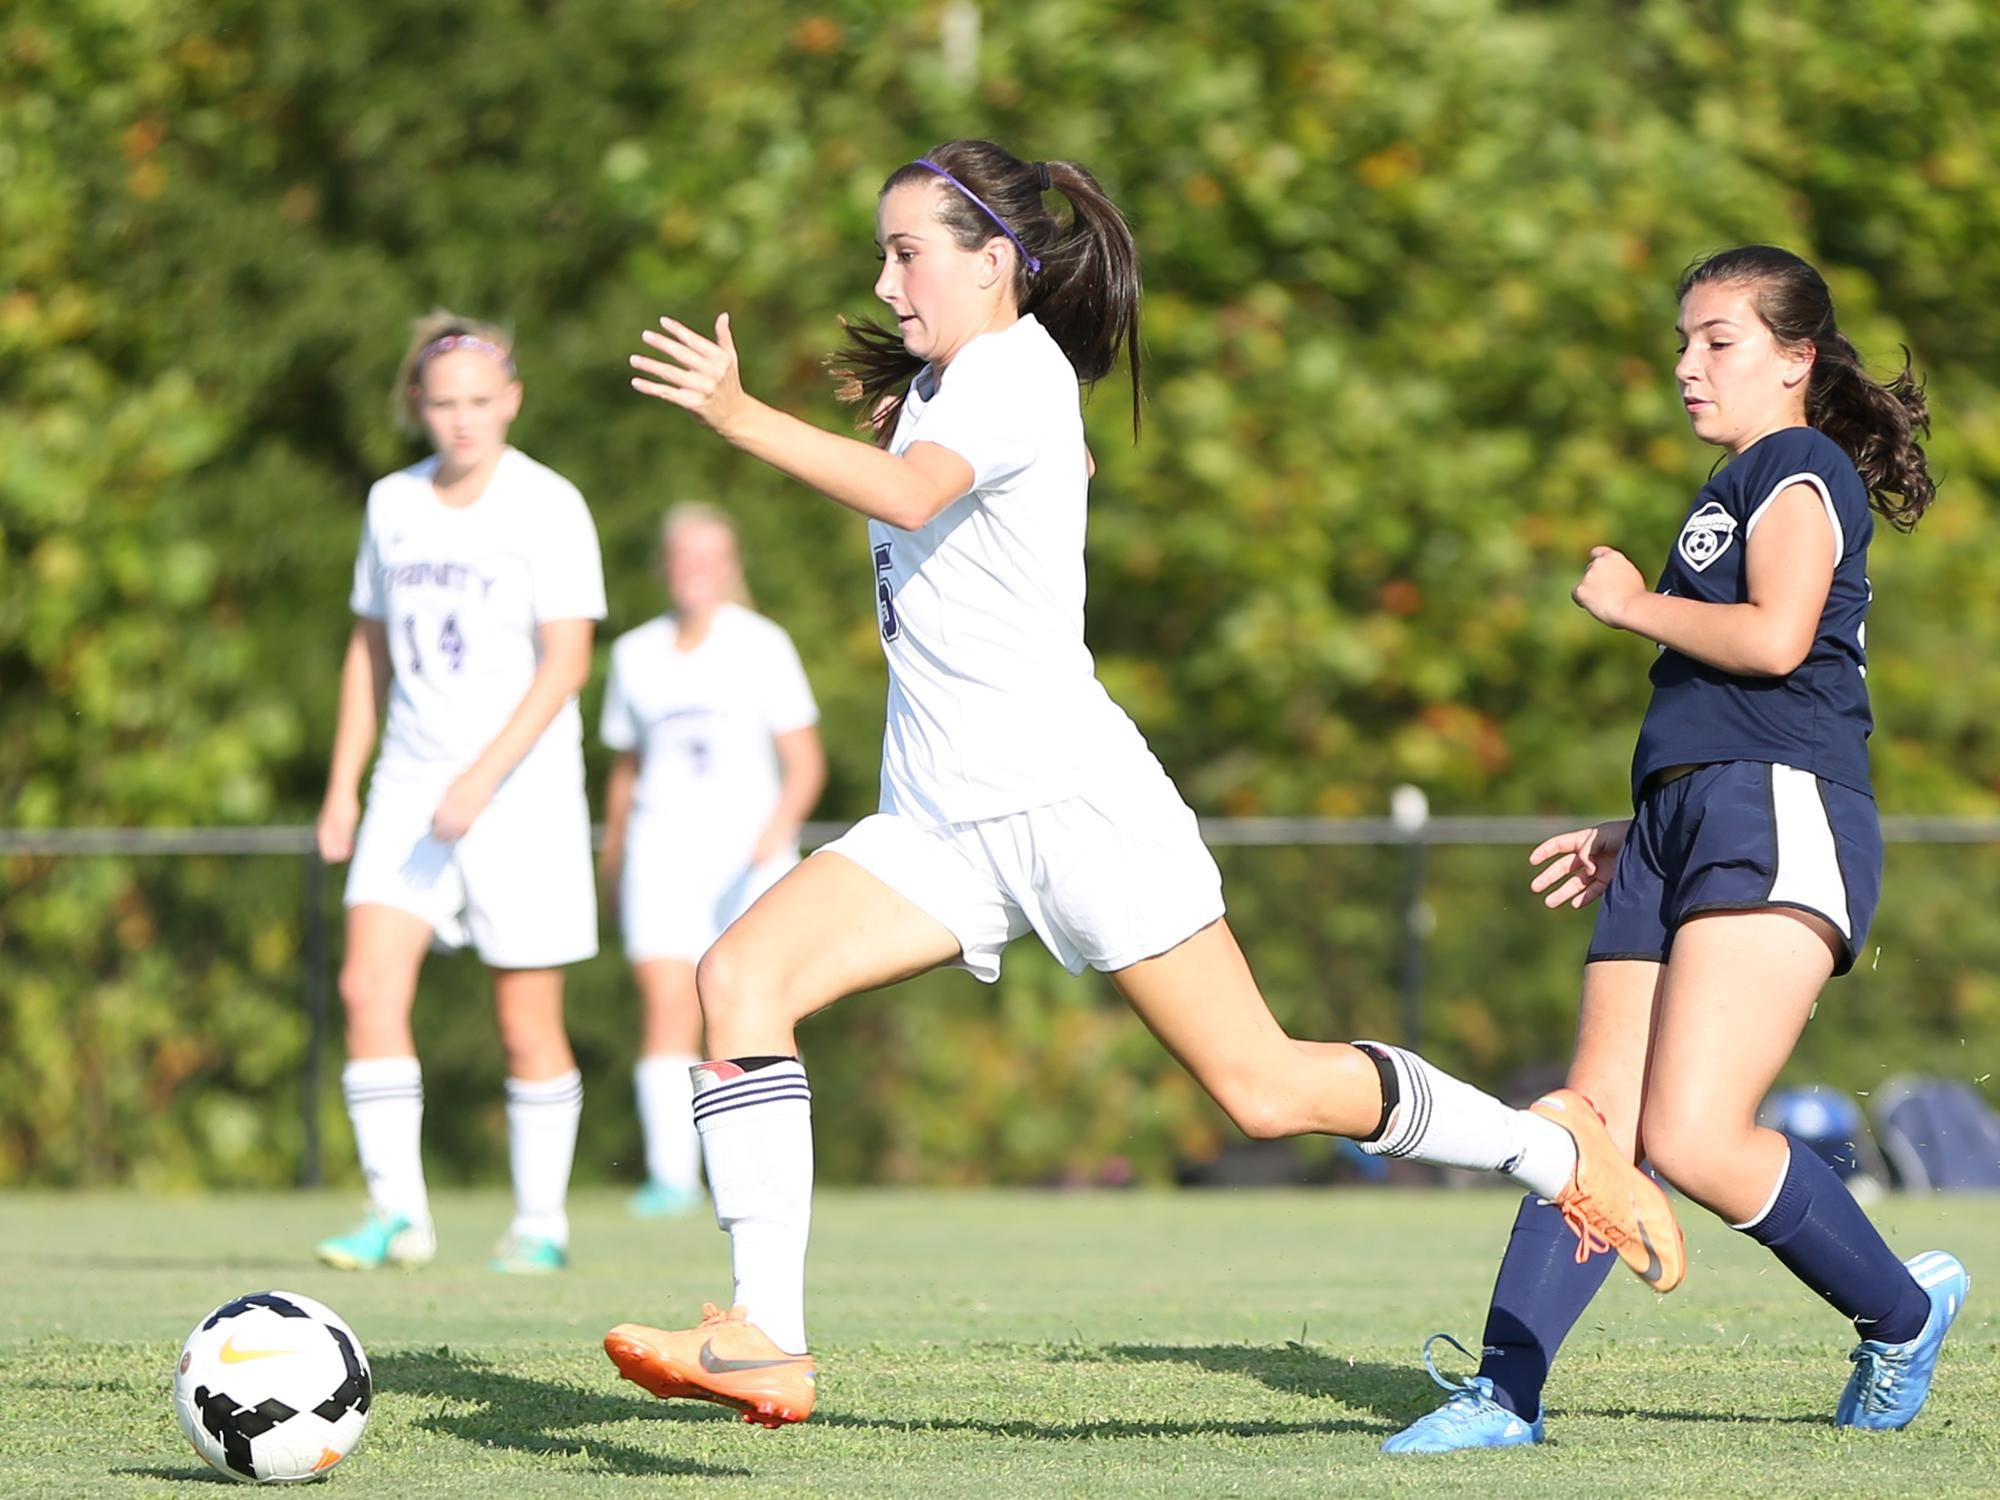 Brynne Lytle has the Lady Lions off to a 7-1-1 start to this season.